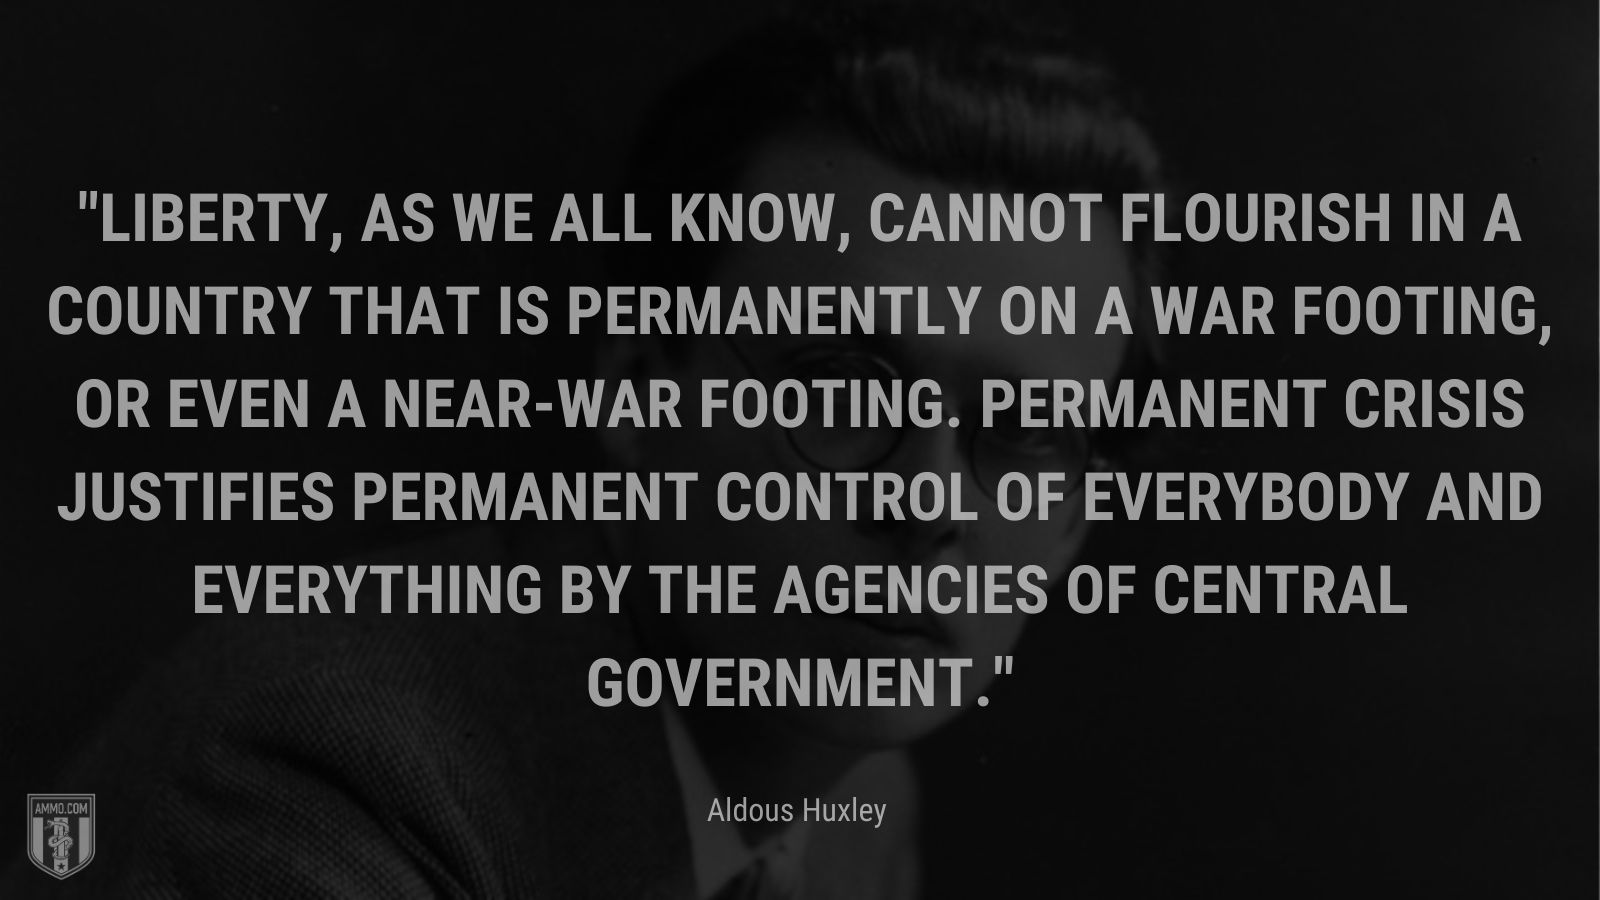 """""""Liberty, as we all know, cannot flourish in a country that is permanently on a war footing, or even a near-war footing. Permanent crisis justifies permanent control of everybody and everything by the agencies of central government. - Aldous Huxley"""